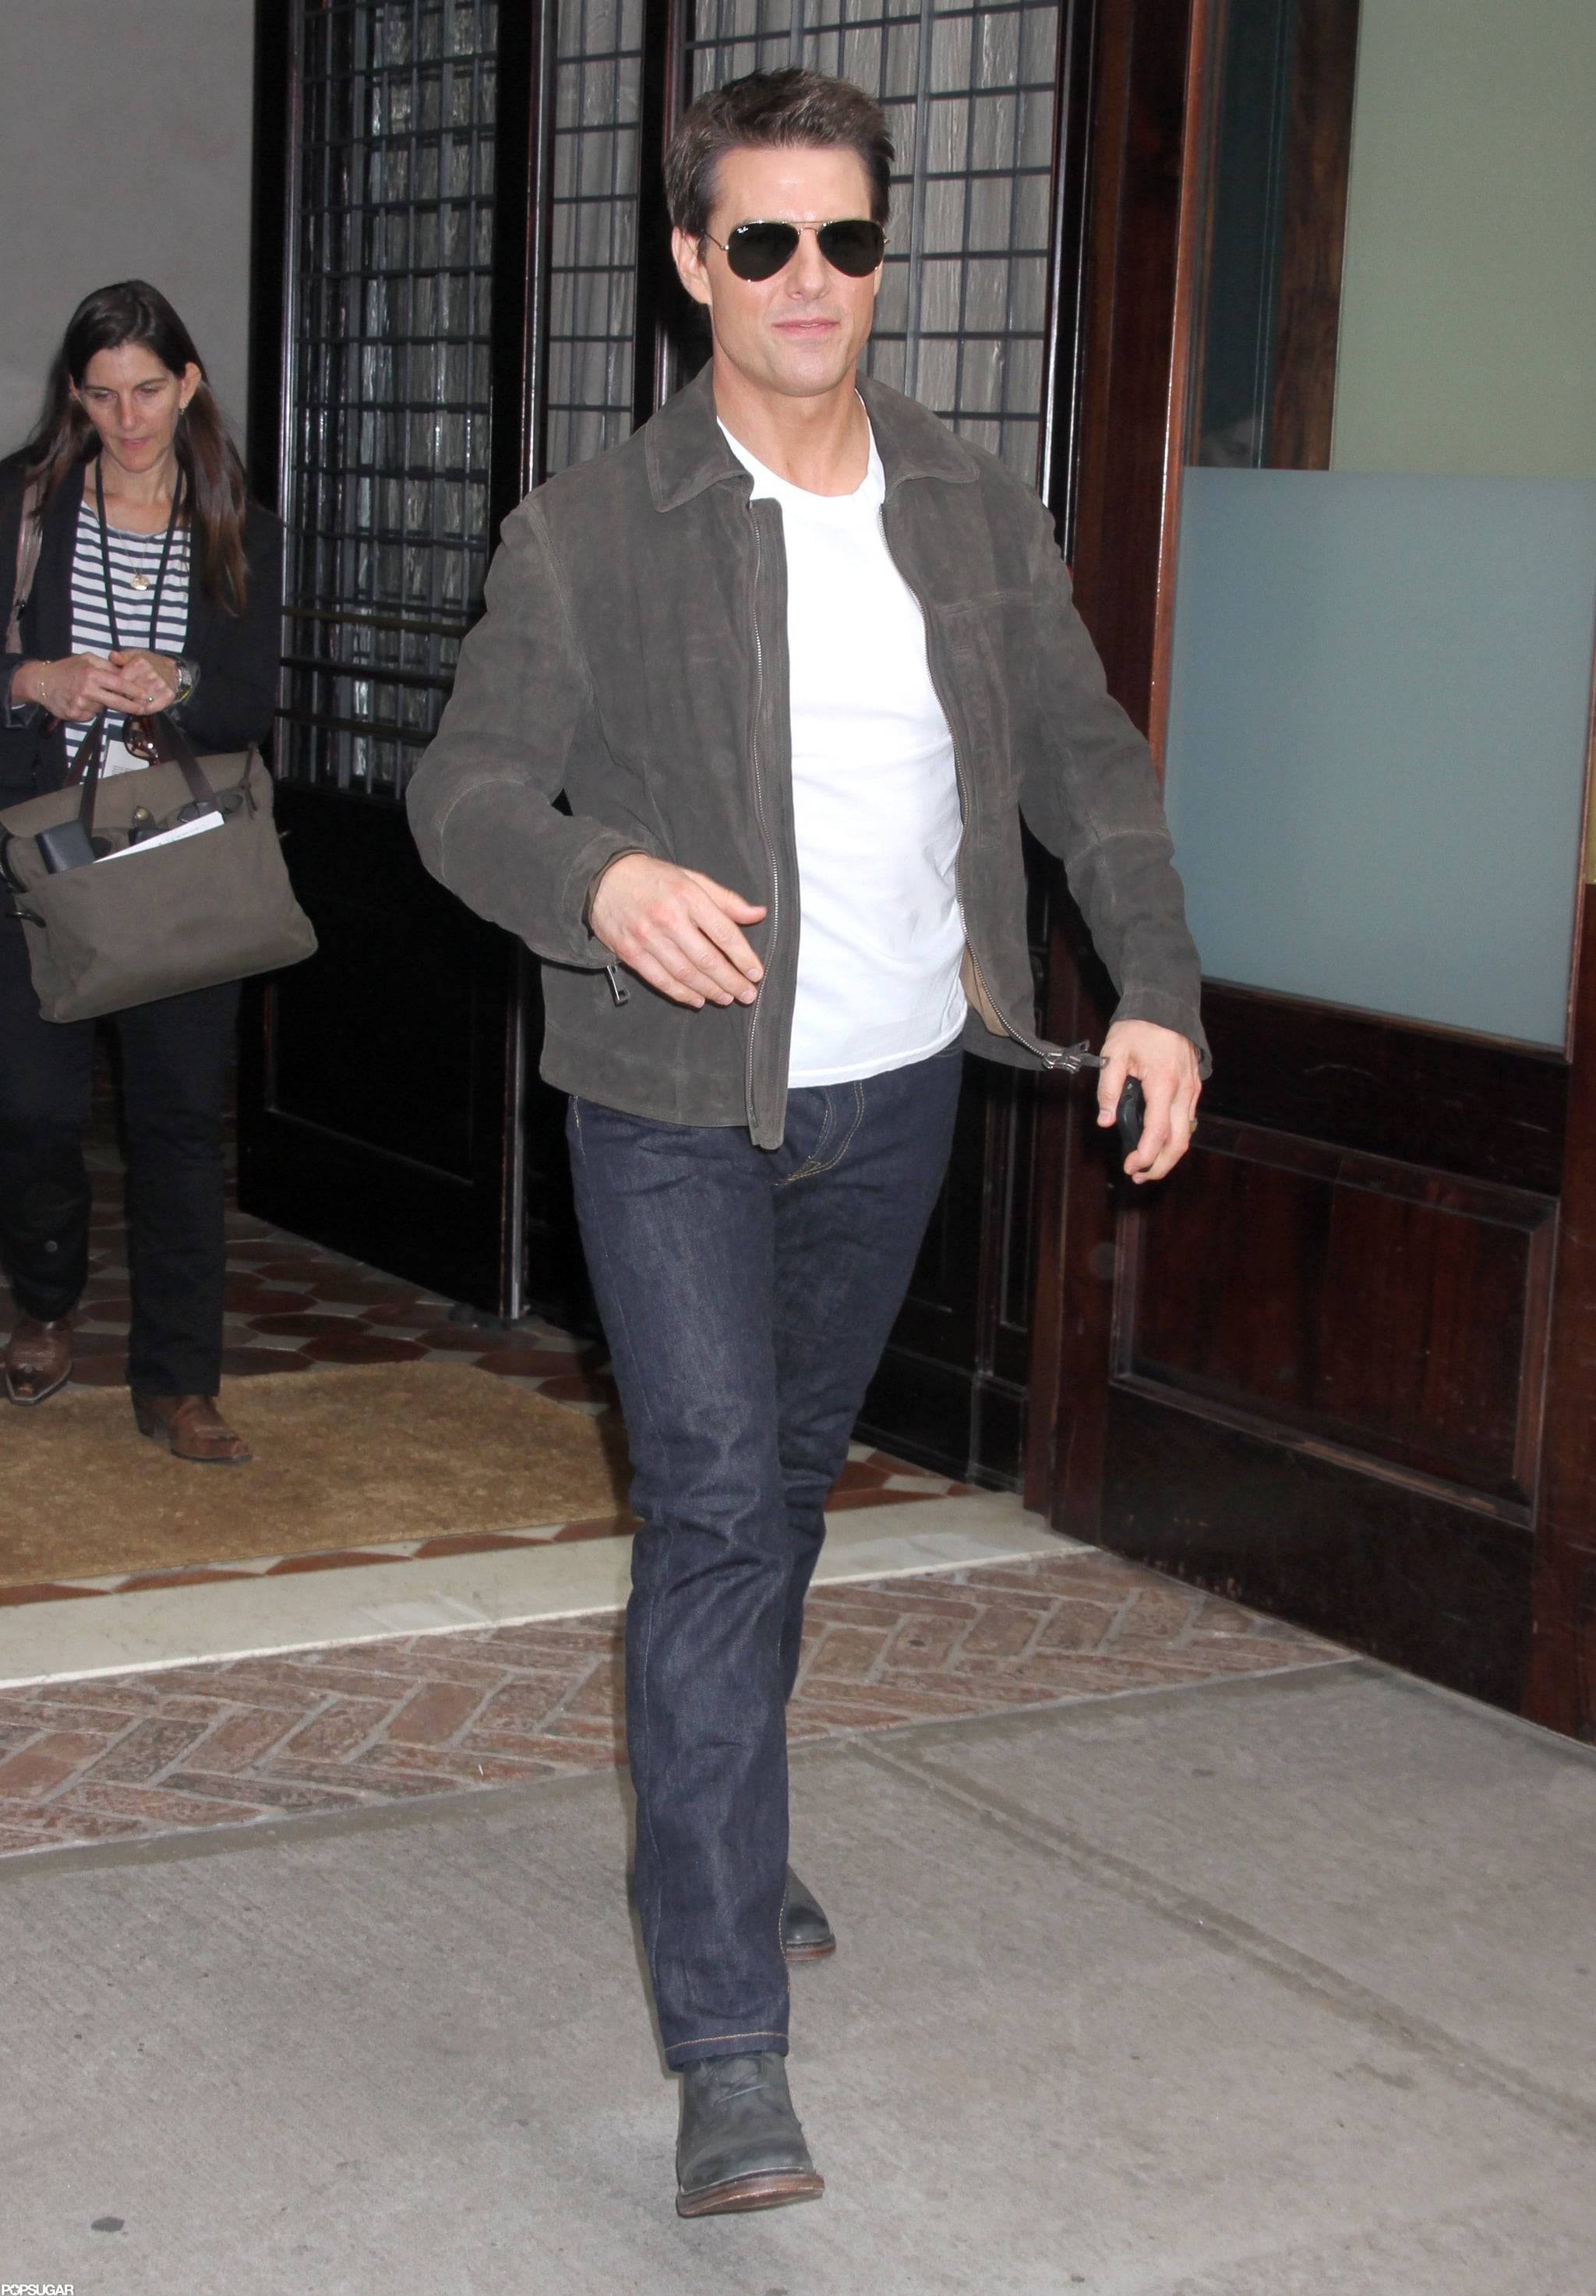 Tom Cruise wore jeans and a jacket in NYC.